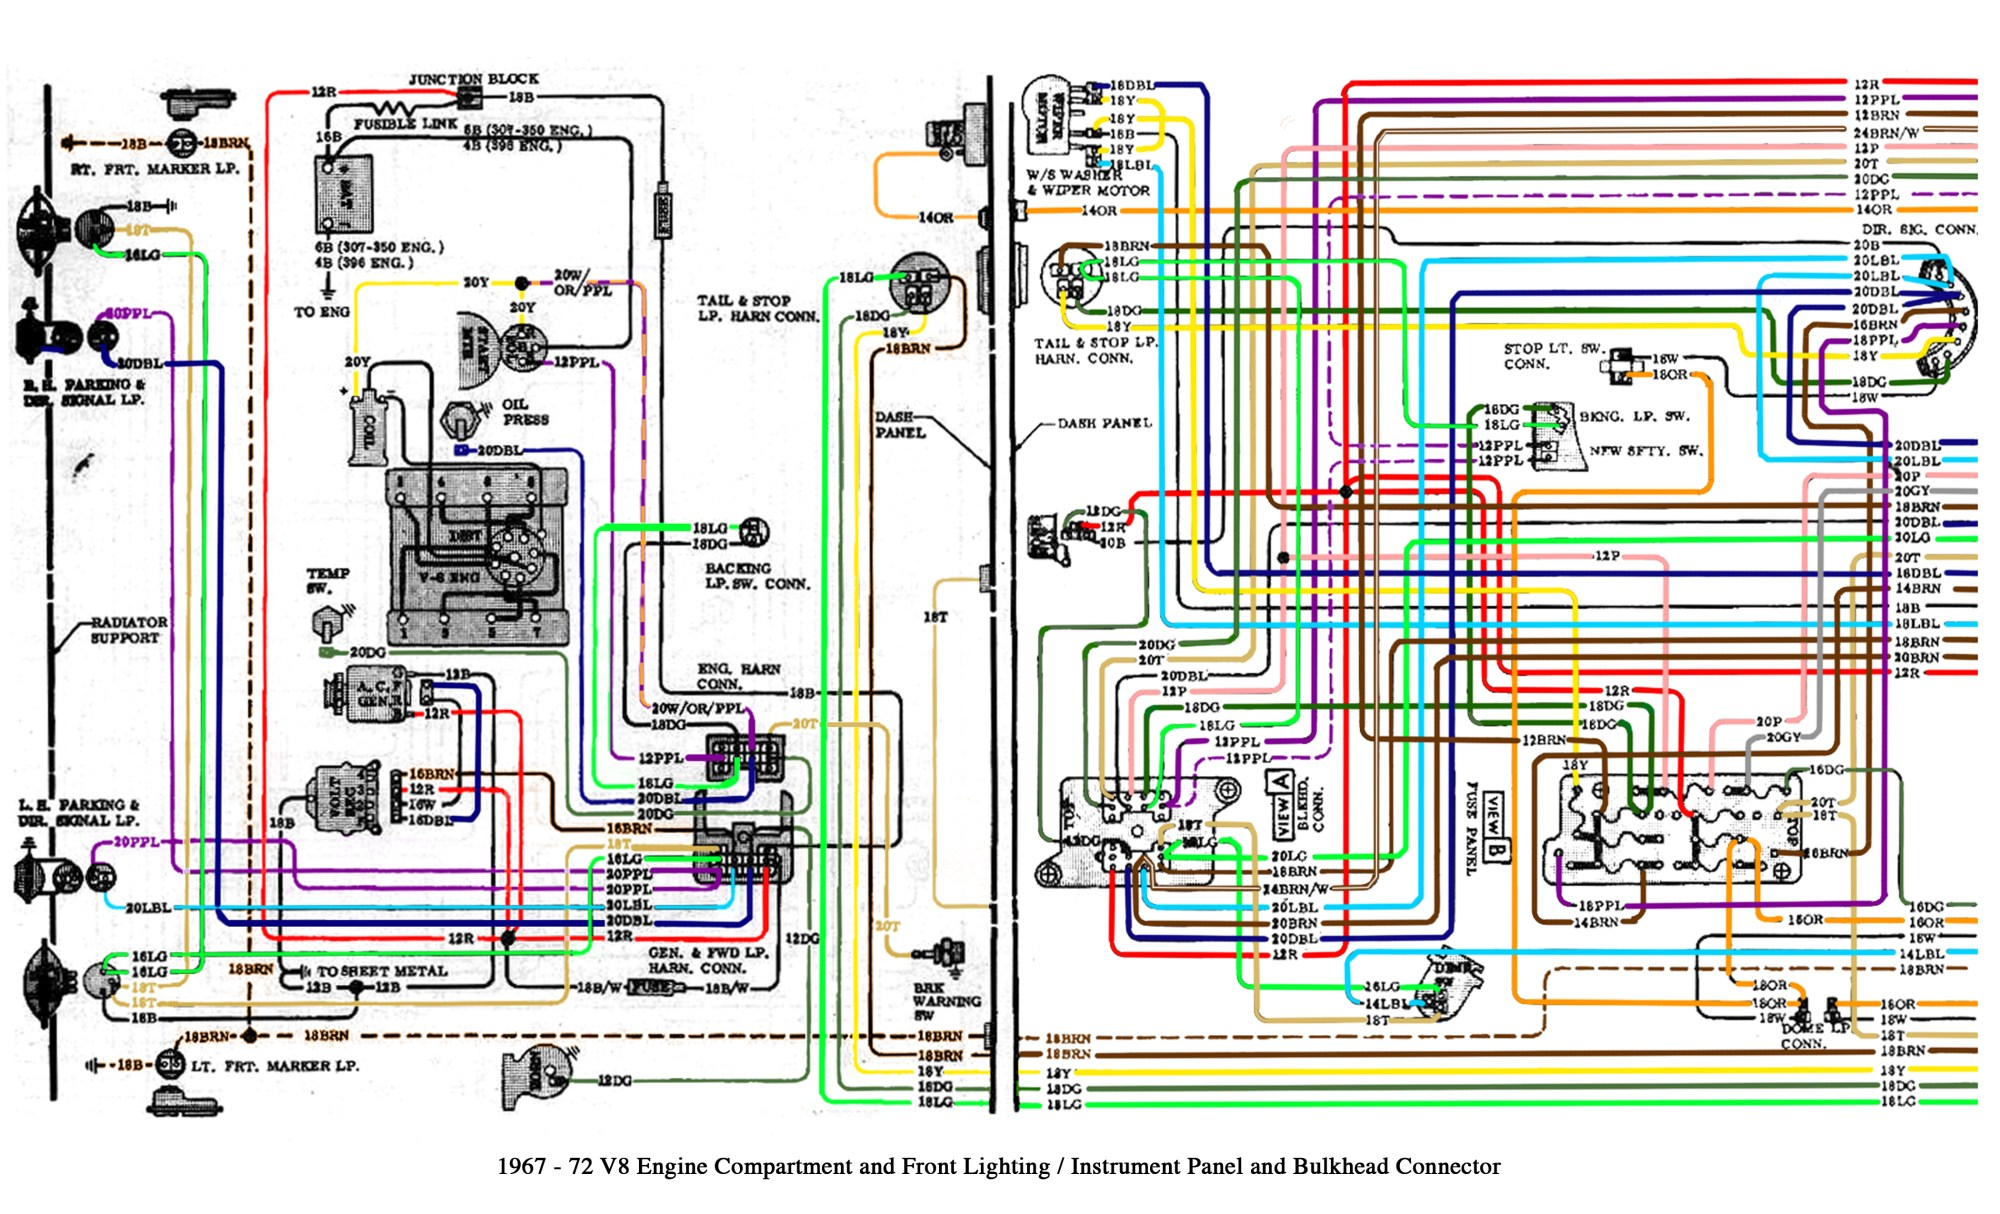 hight resolution of 1975 gmc wiring harness real wiring diagram u2022 rh mcmxliv co 1990 gmc brake light switch